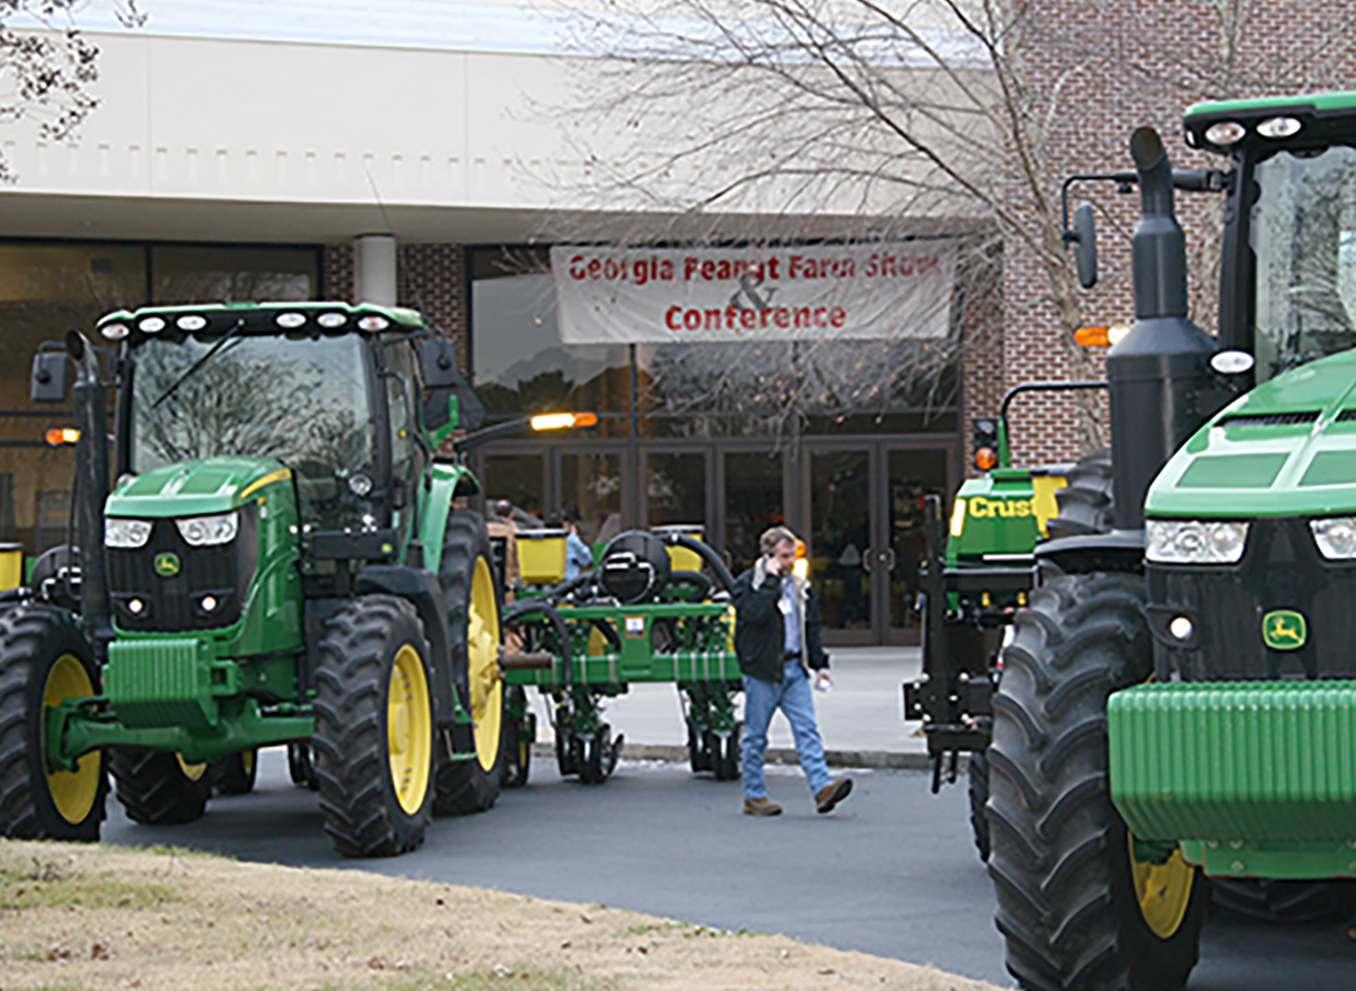 The Georgia Peanut Farm Show was held at the UGA Tifton Campus Conference Center on Thursday, Jan. 21.